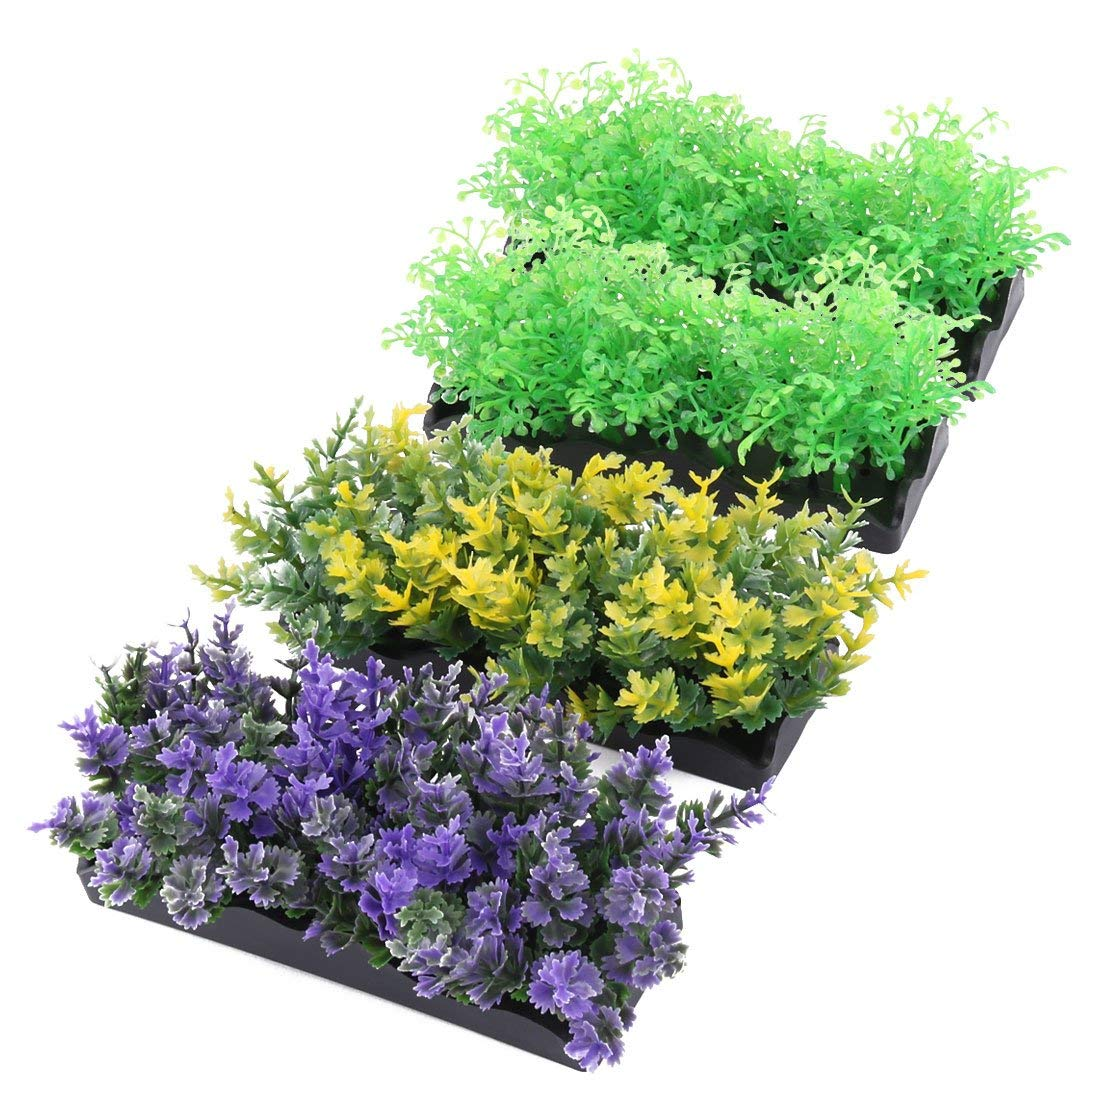 Aquarium Fish Tank Landscaping Artificial Grass Water Plants Decor Ornament 1.8 Inch Height 4pcs